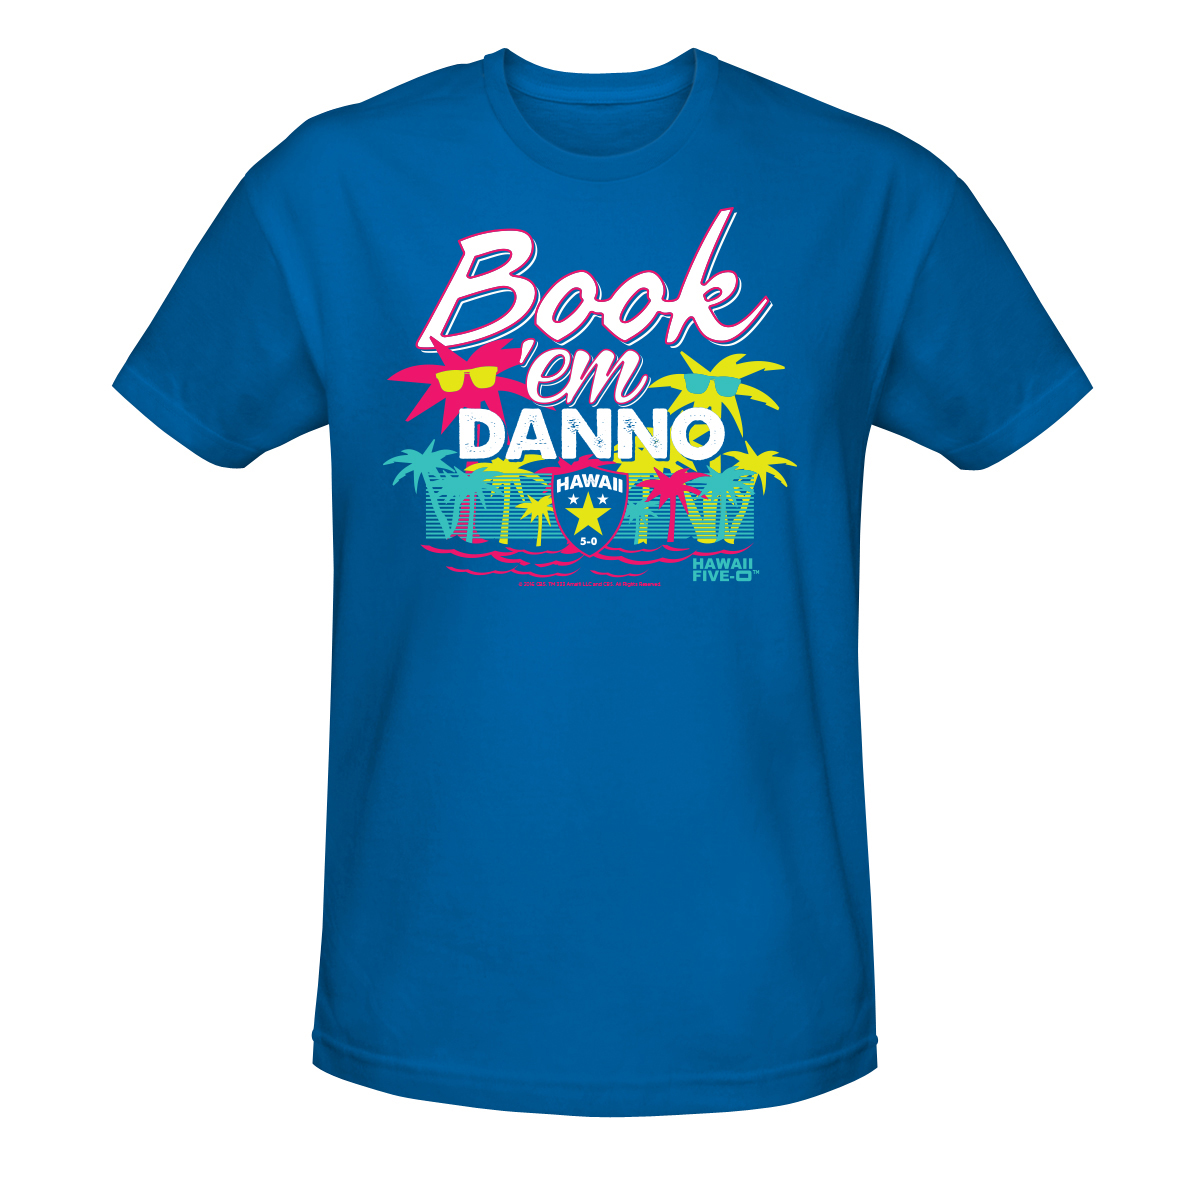 Hawaii Five-0 Book 'em Danno T-Shirt